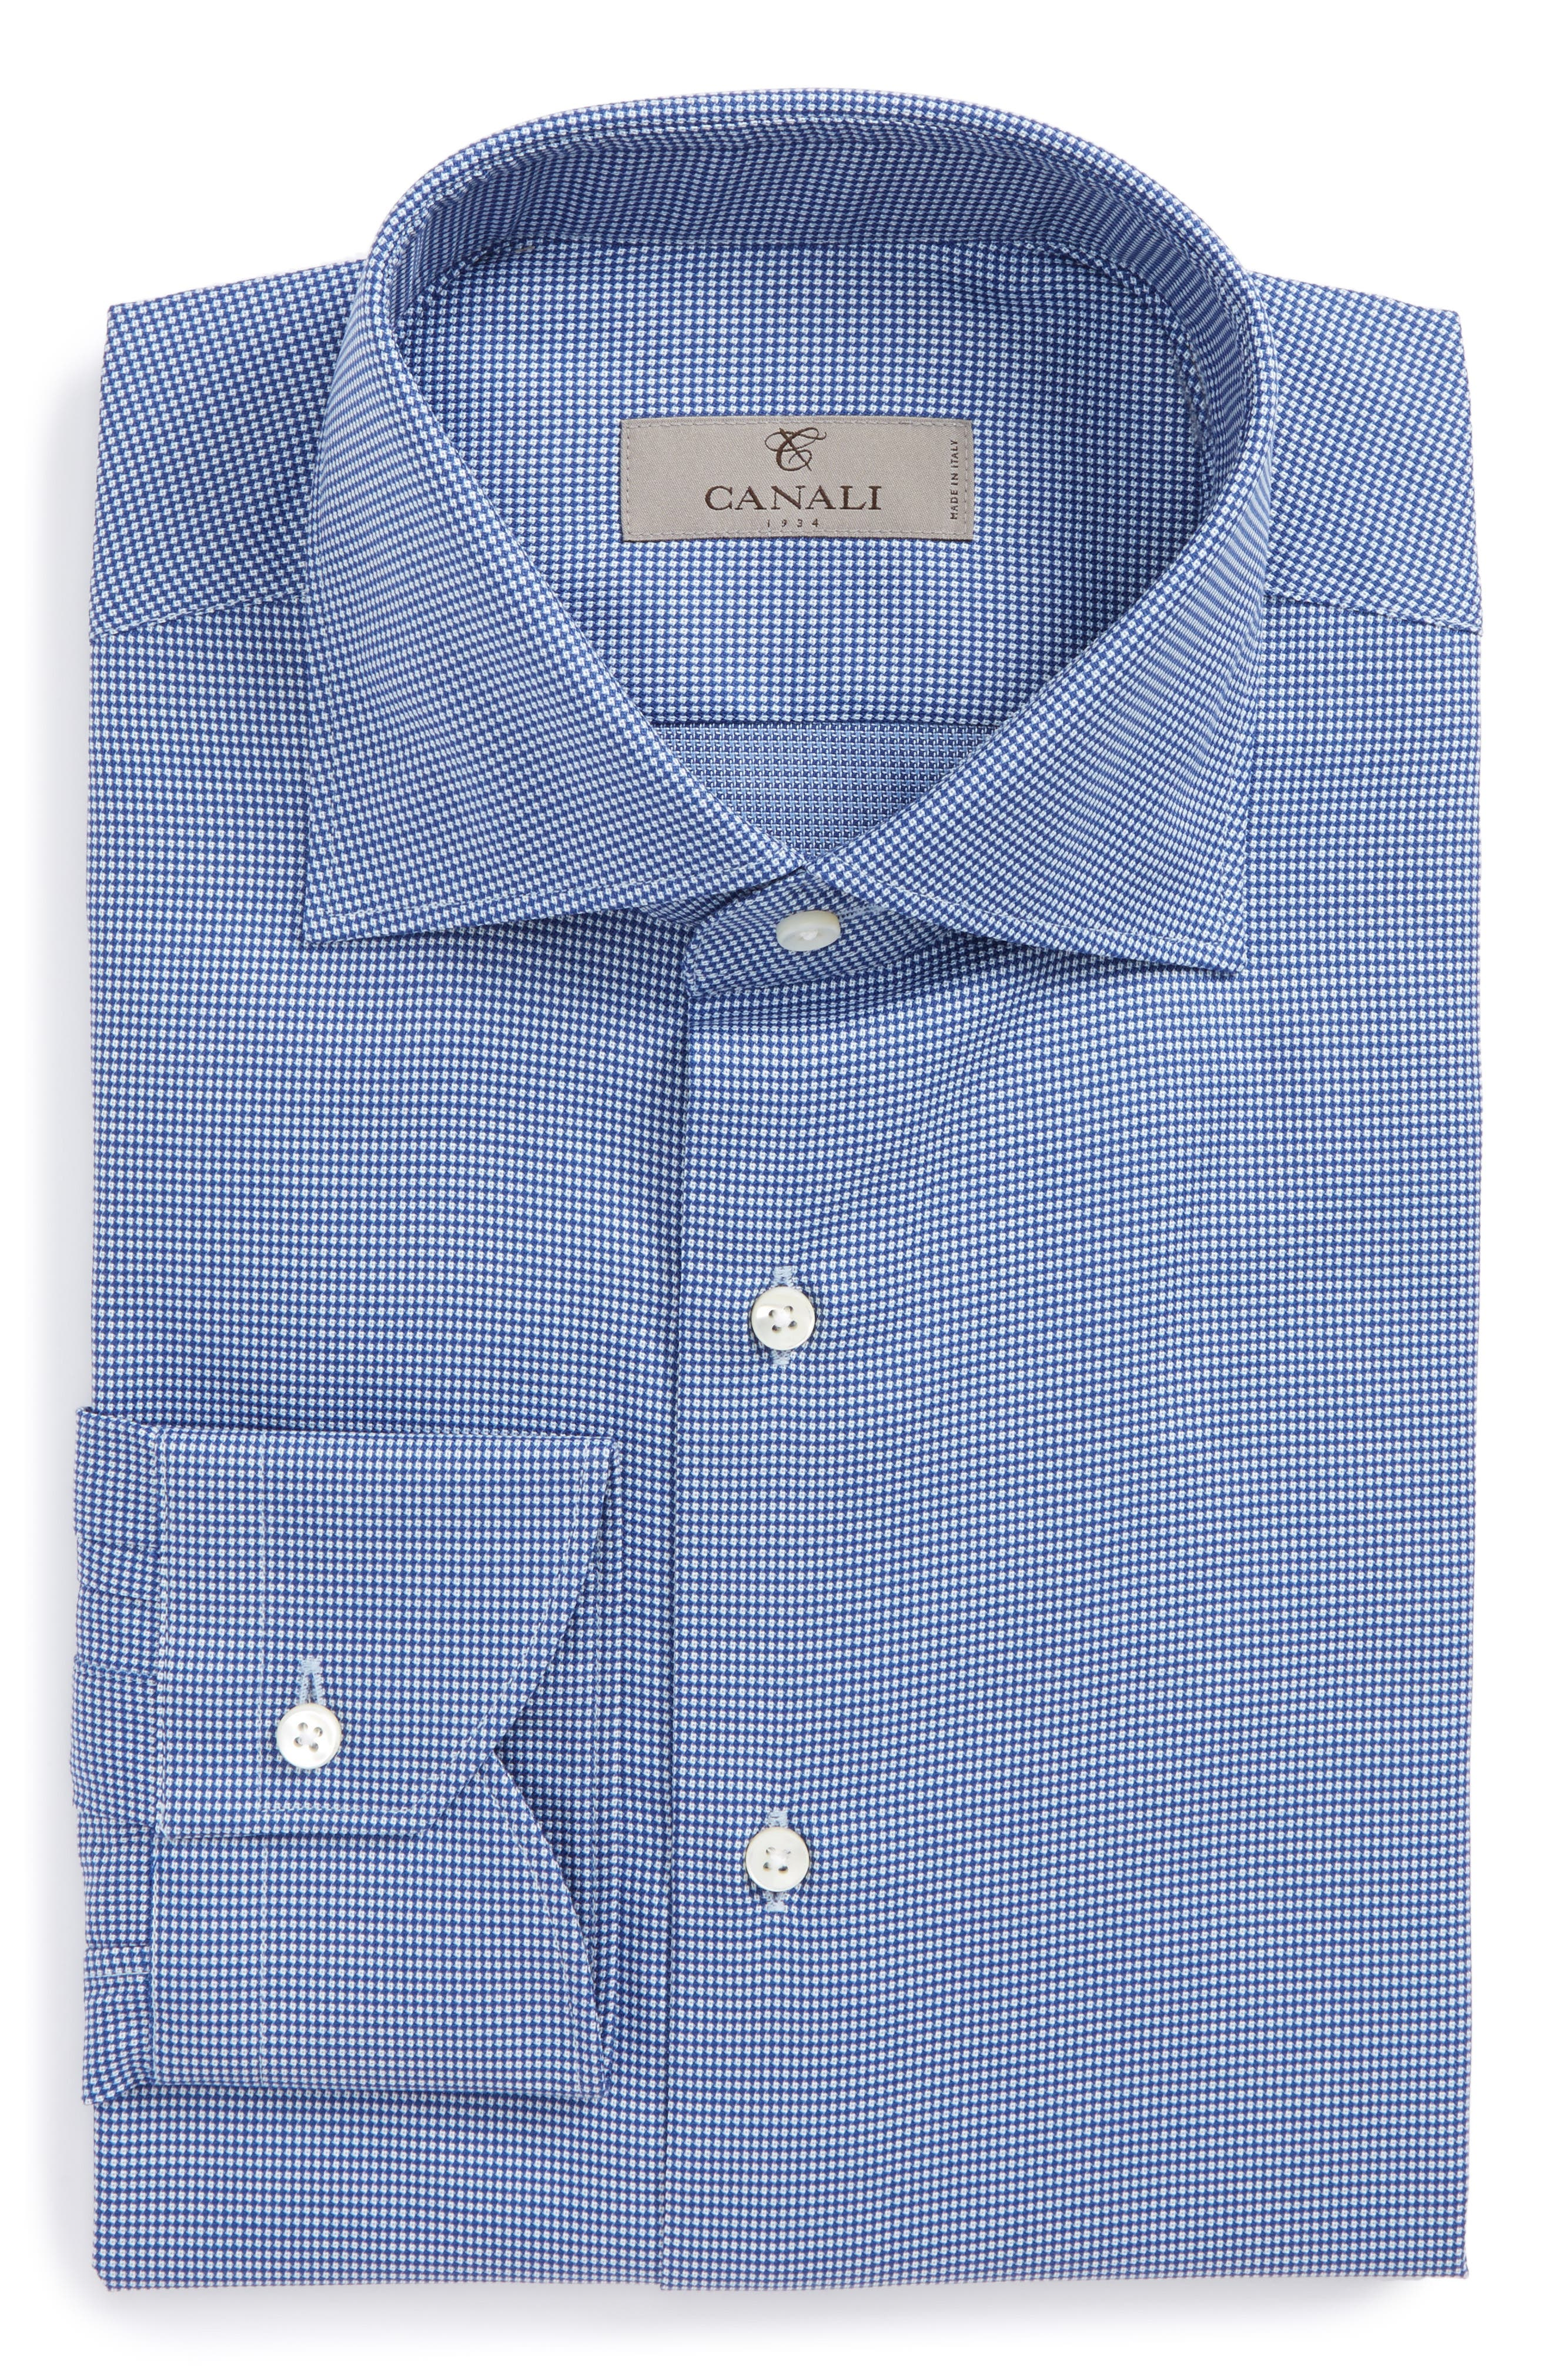 Regular Fit Solid Dress Shirt,                             Main thumbnail 1, color,                             401